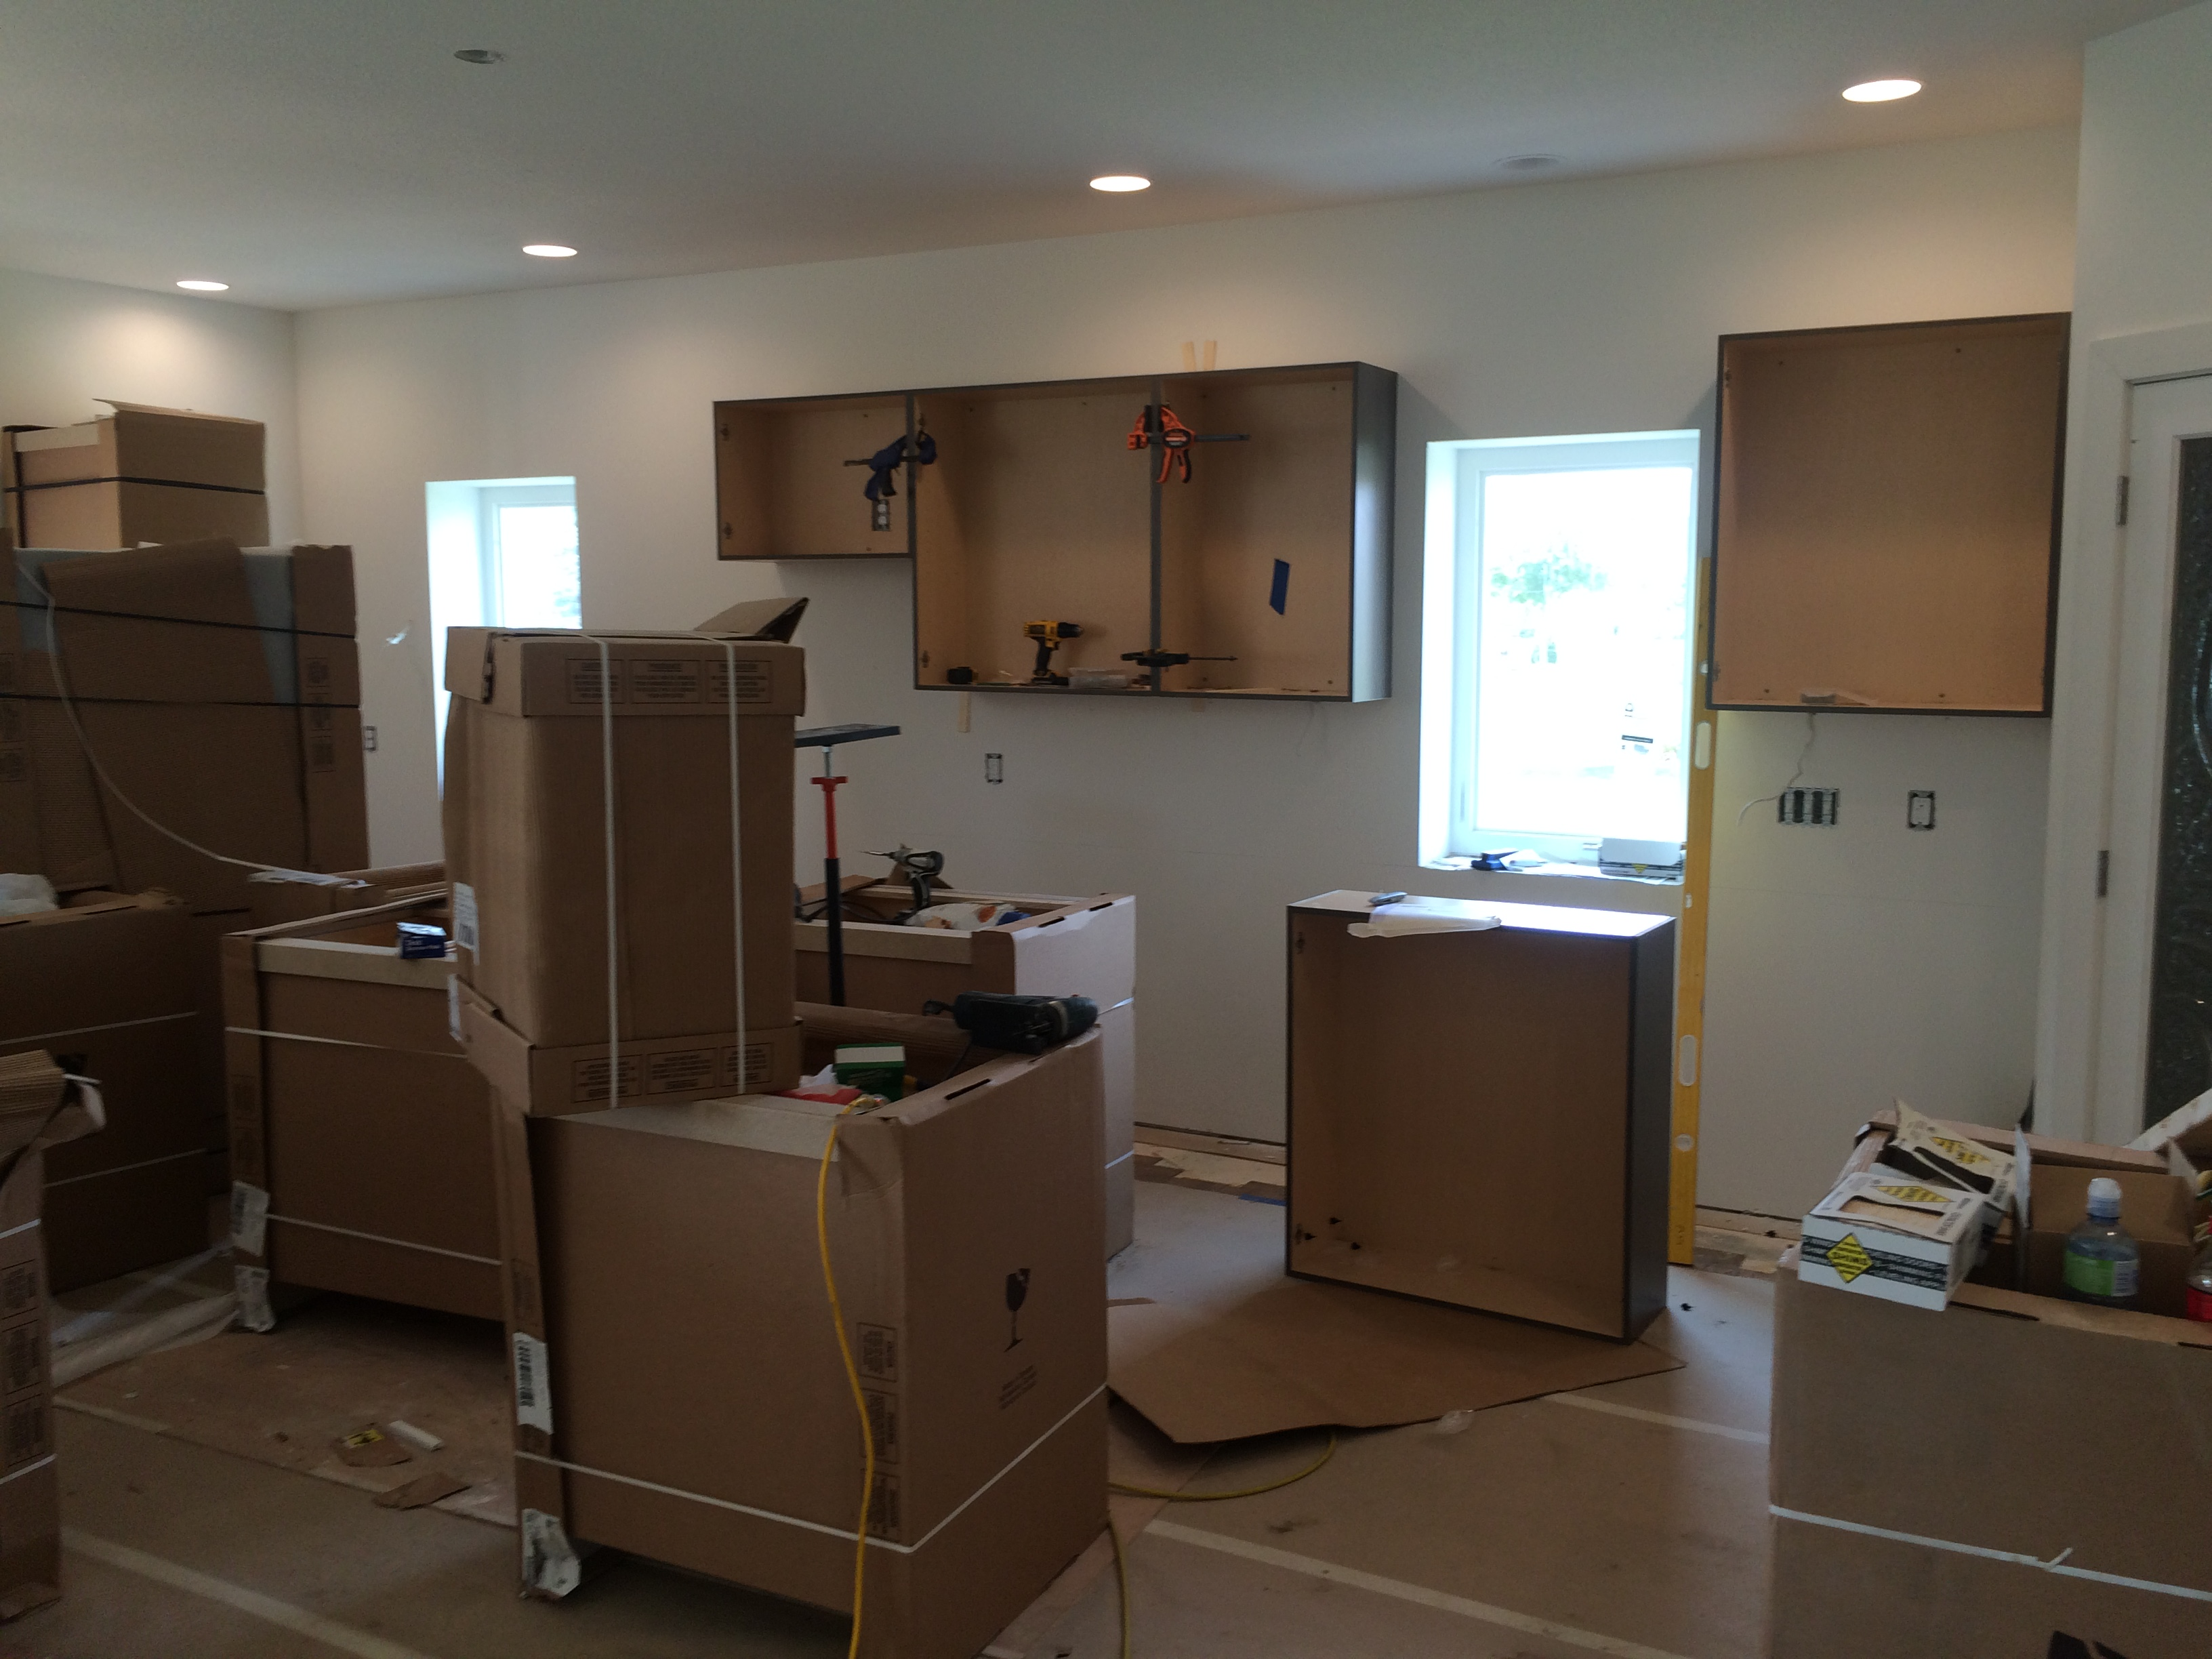 Kitchen Cabinetry Installation